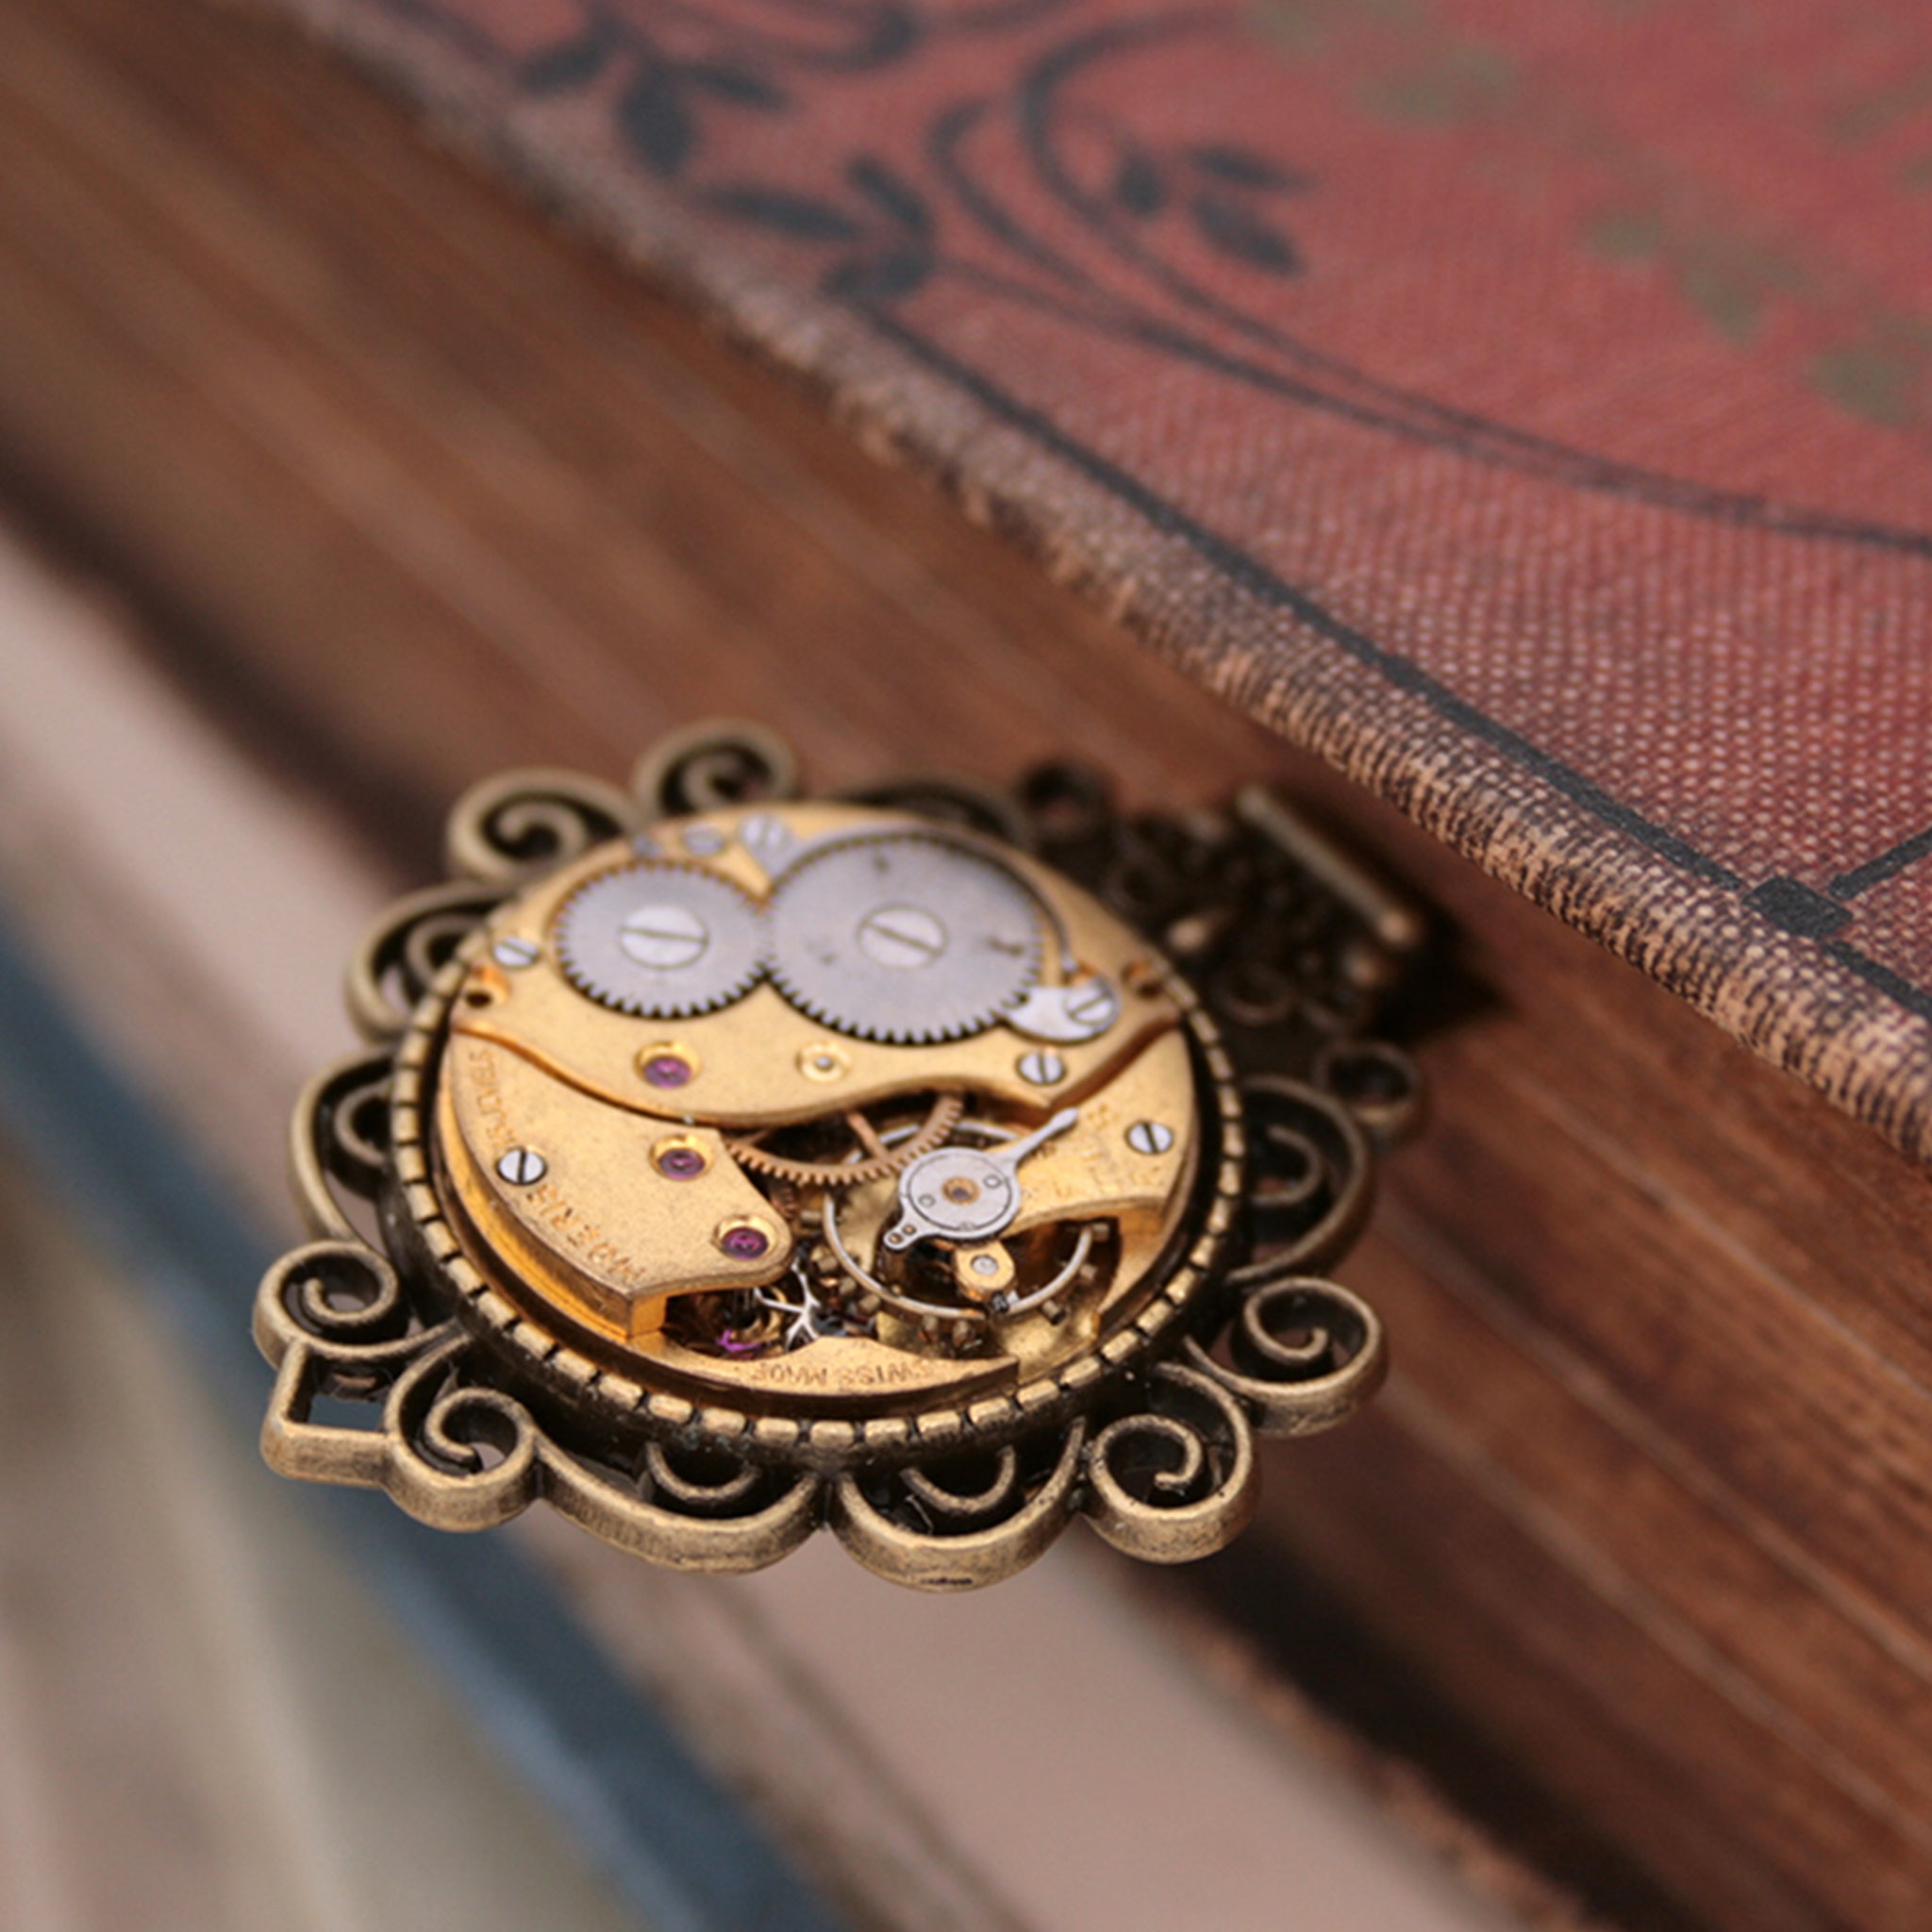 Unique Bronze Bookmark made of vintage watch movement